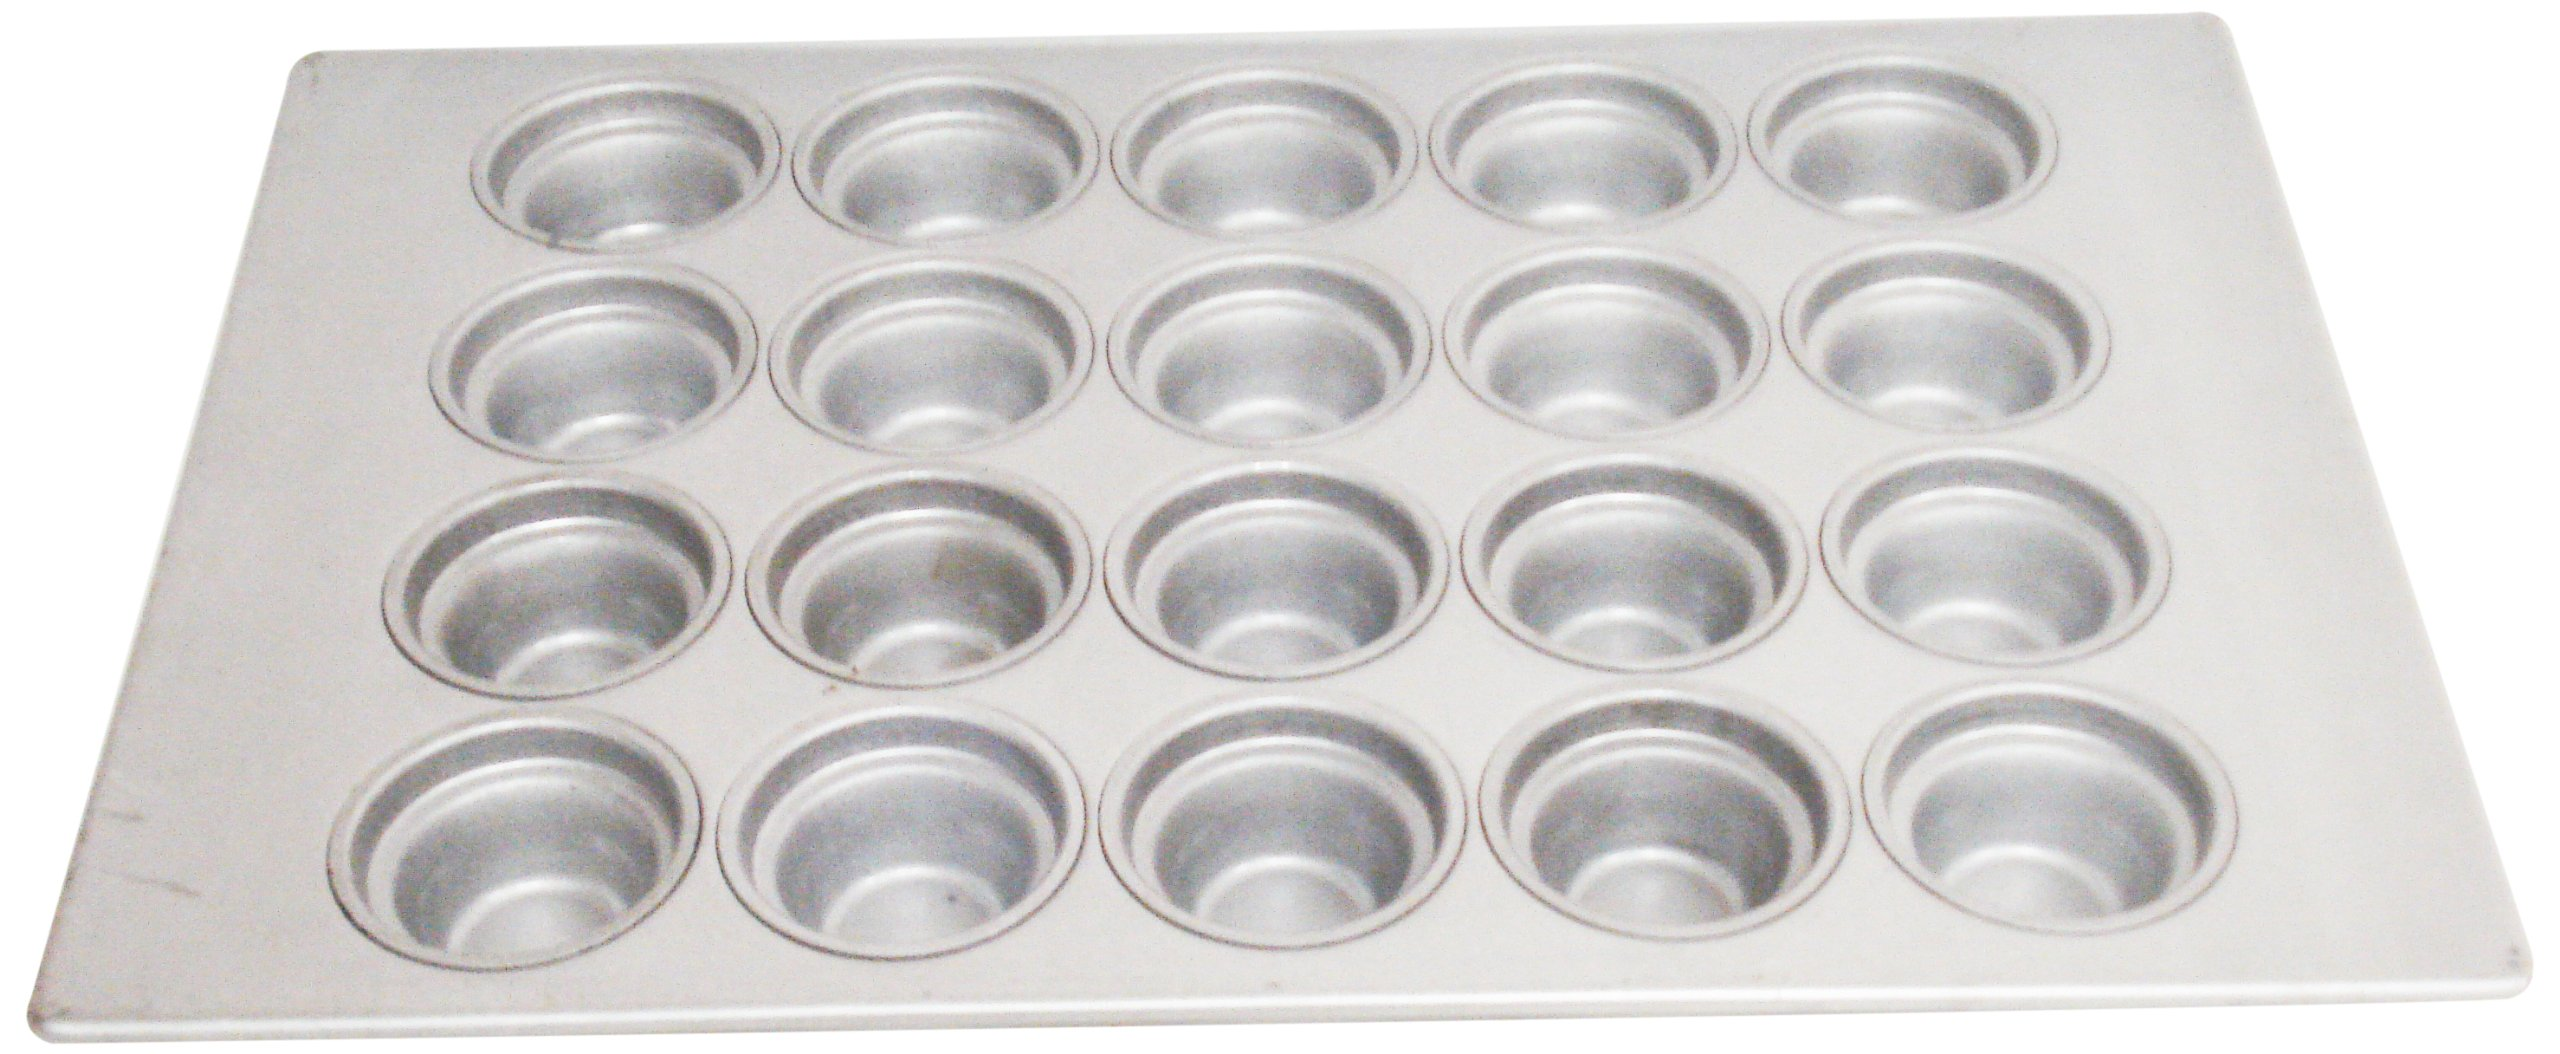 Magna Industries 15342 22-Gauge Aluminized Steel Crown Top Large Muffin Pan, 3-1/2'' Diameter, 4 x 5 Cups Layout (Pack of 6)